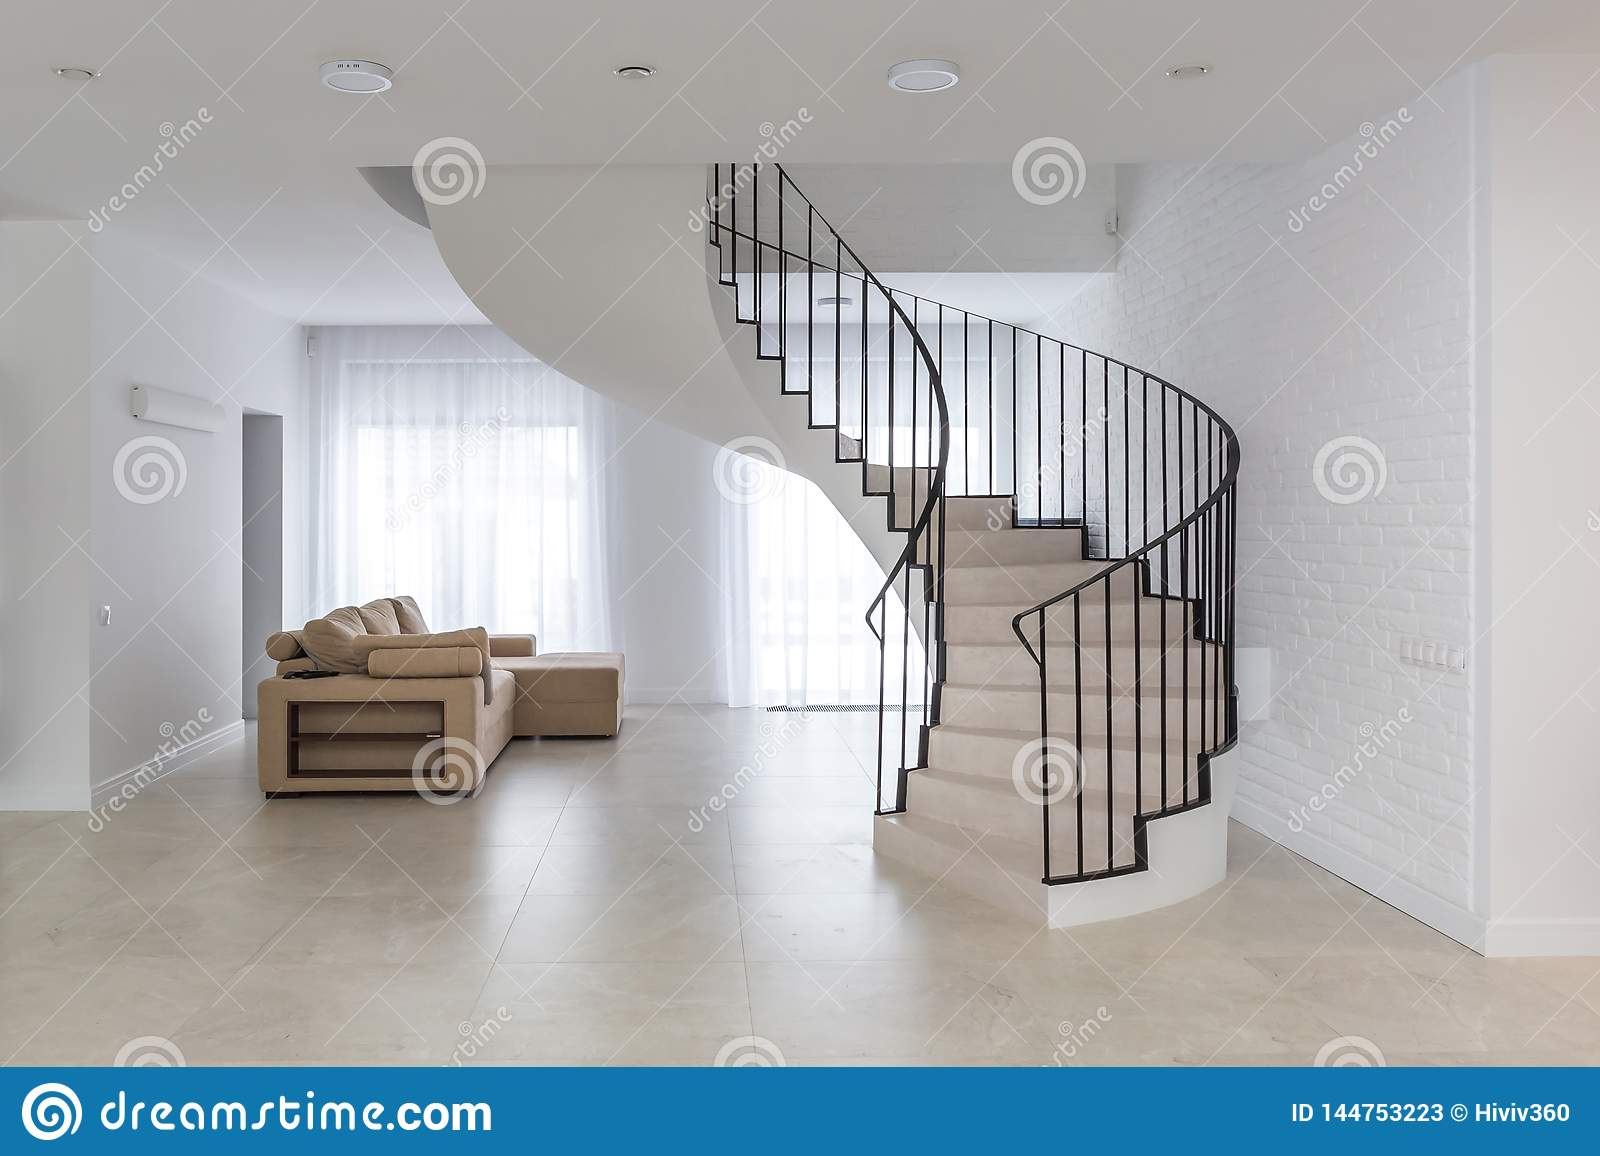 Spiral staircase in bright interior with white brick wall in elite expensive